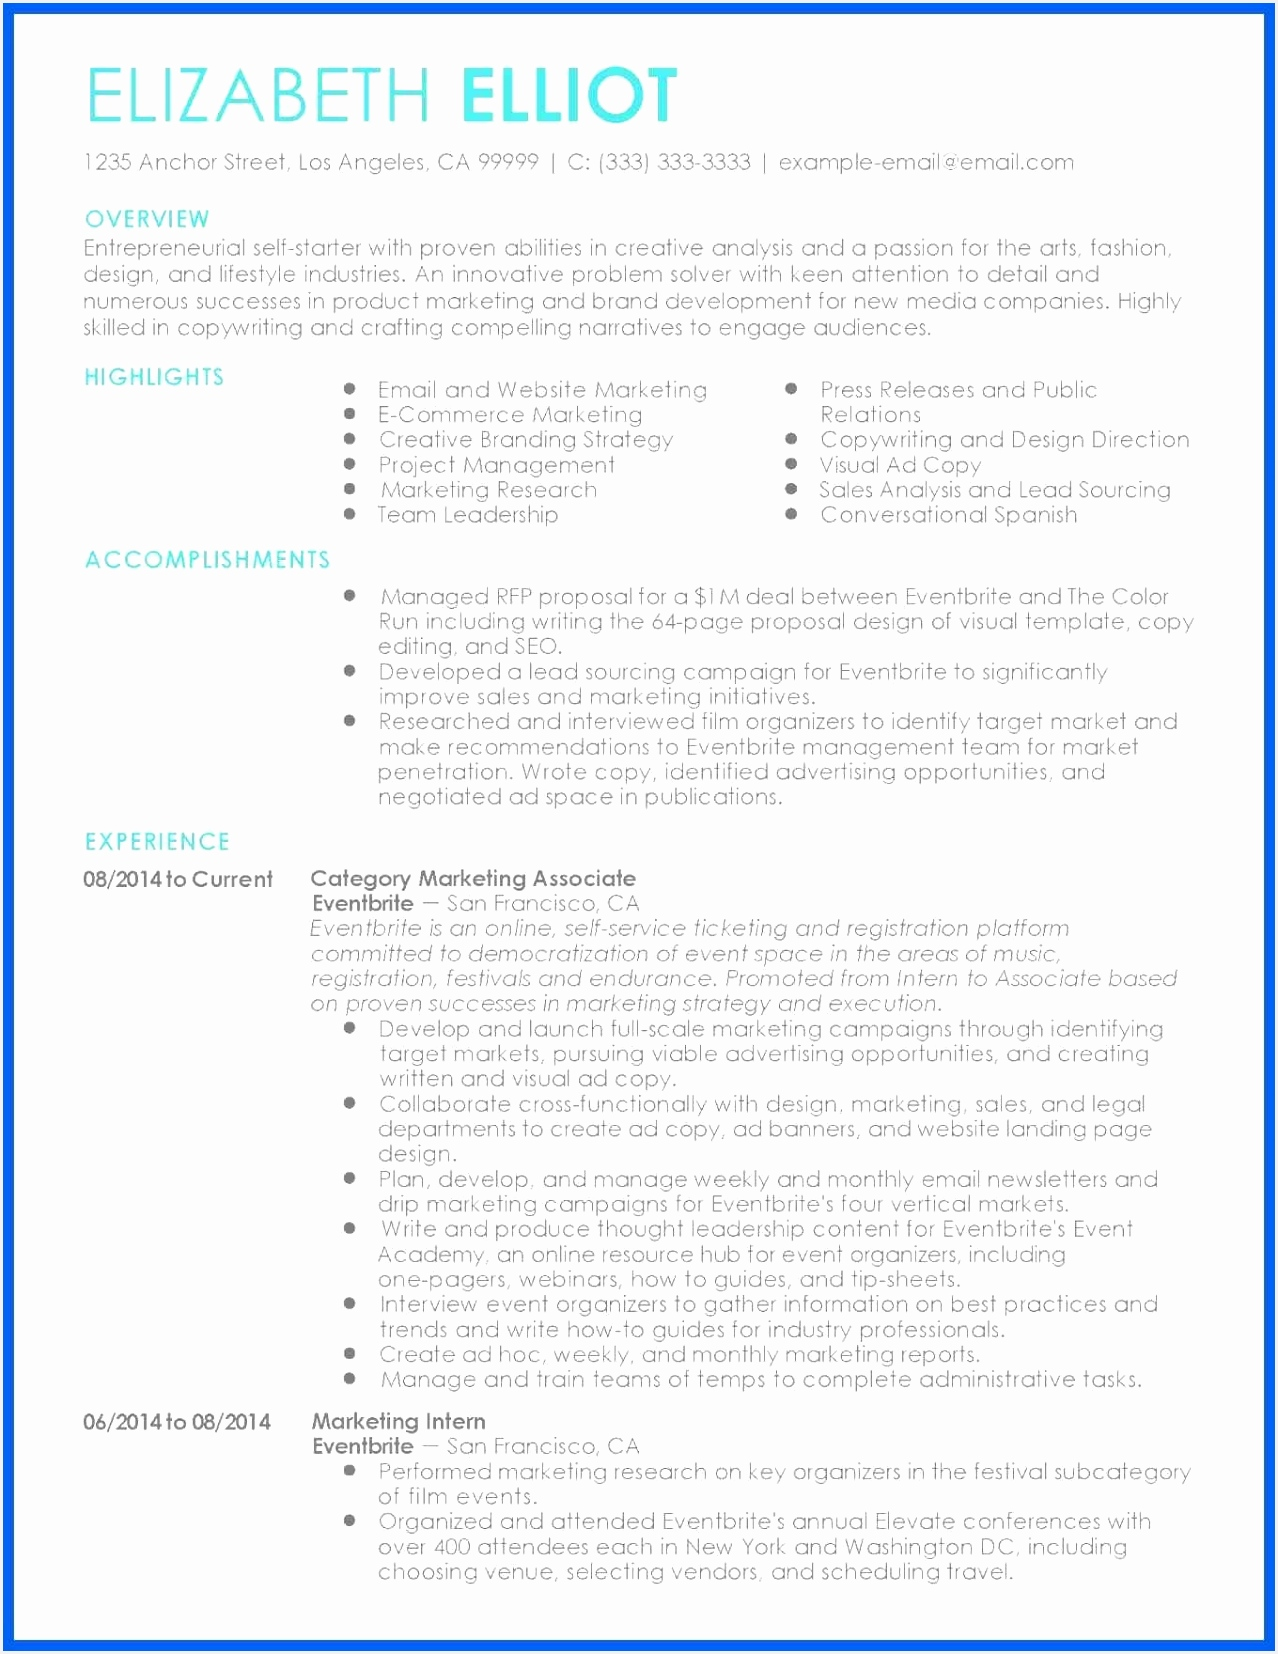 Resume Samples for Project Managers Ngvhh Luxury Resume Copy with Resume Sample Copy New Garden Journal Template New Of Resume Samples for Project Managers Xuxgh Lovely Project Management Resumes Inspirational Lovely Grapher Resume